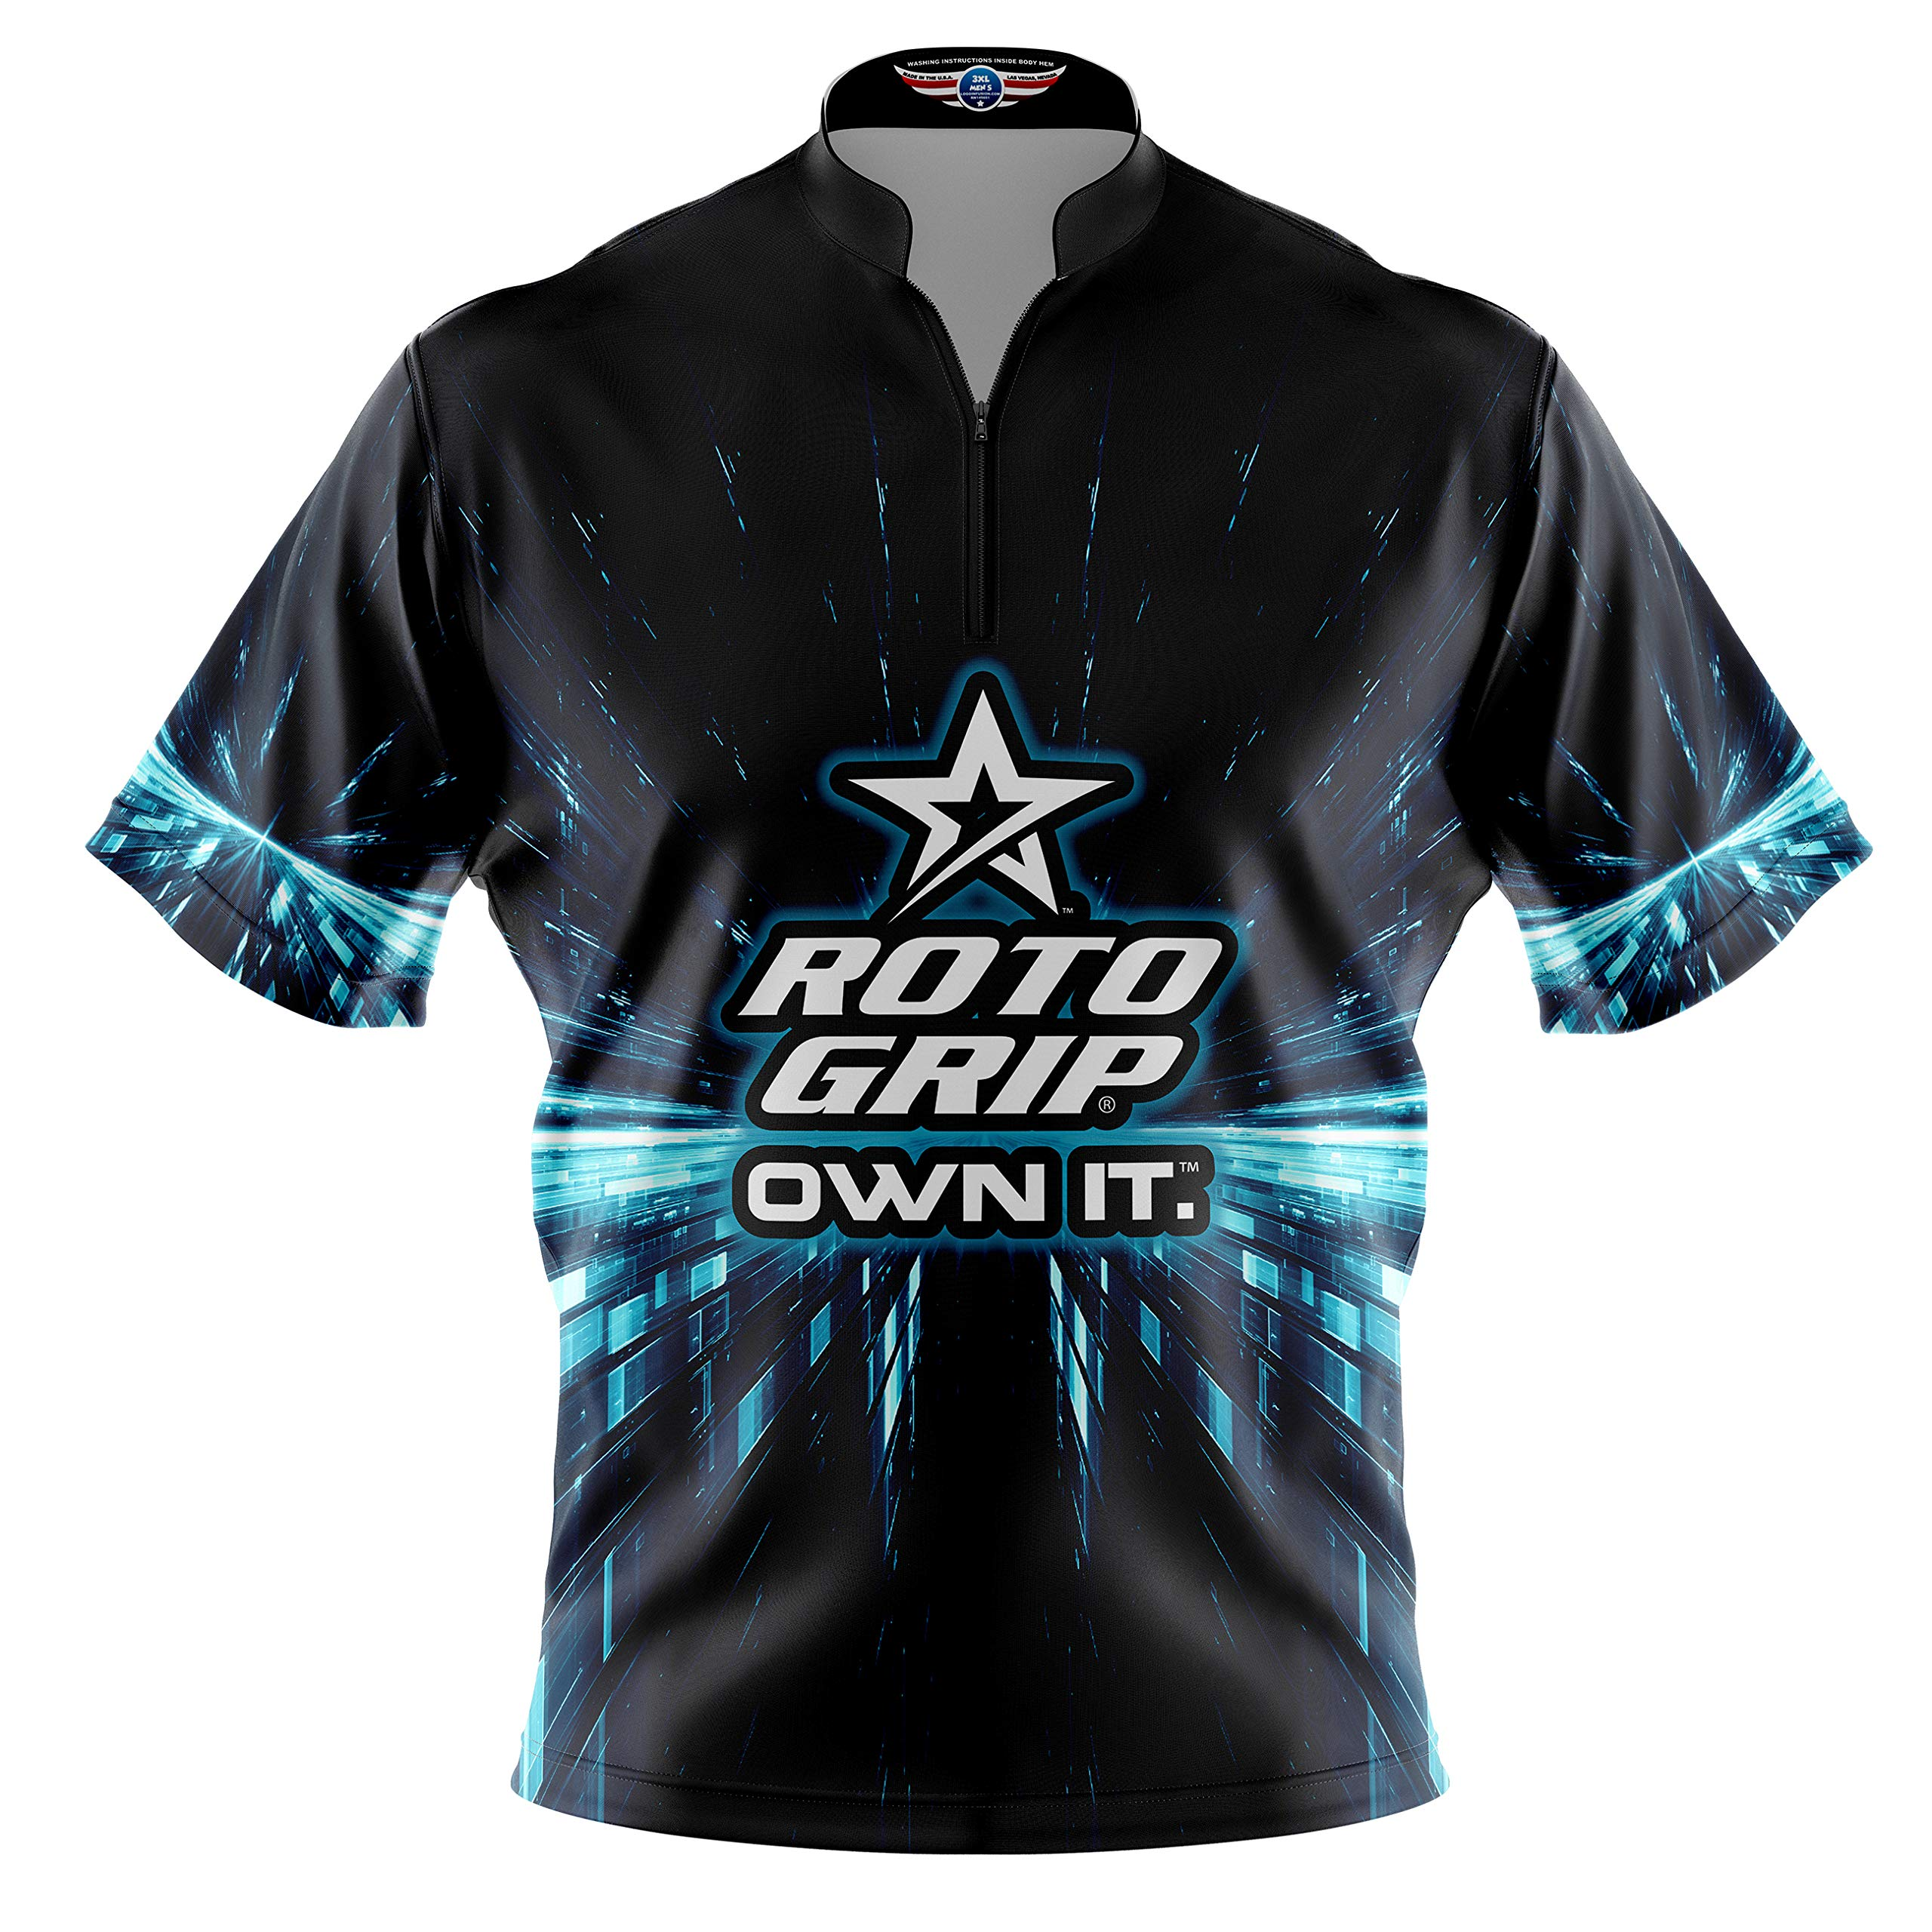 Logo Infusion Bowling Dye-Sublimated Jersey (Sash Collar) - Roto Grip Style 0360 - Sizes S-3XL (M) by Logo Infusion